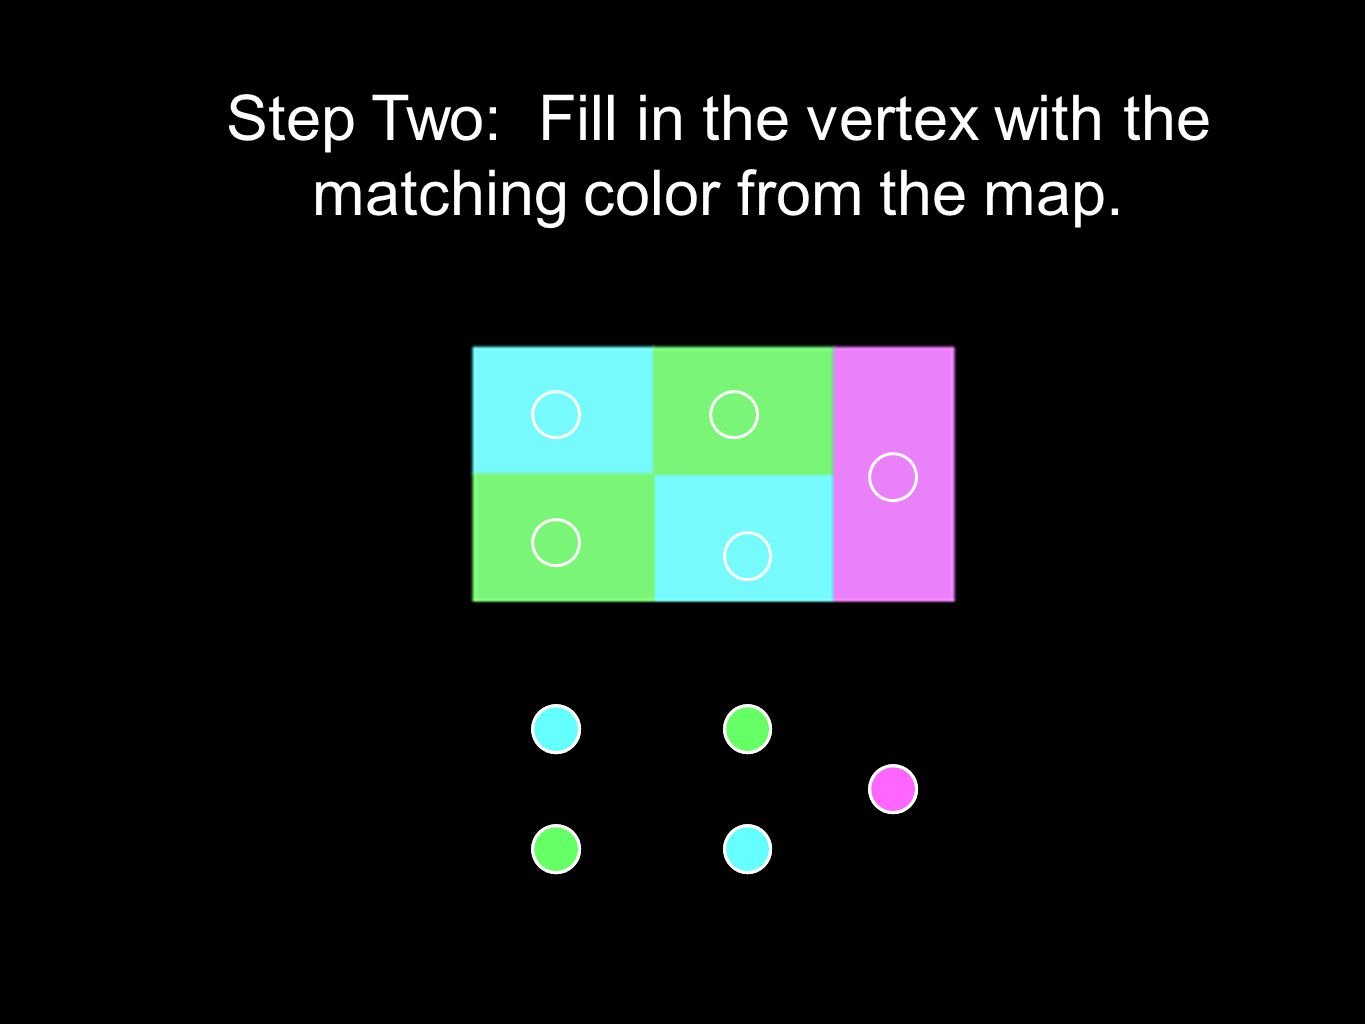 Step Two: Fill in the vertex with the matching color from the map.